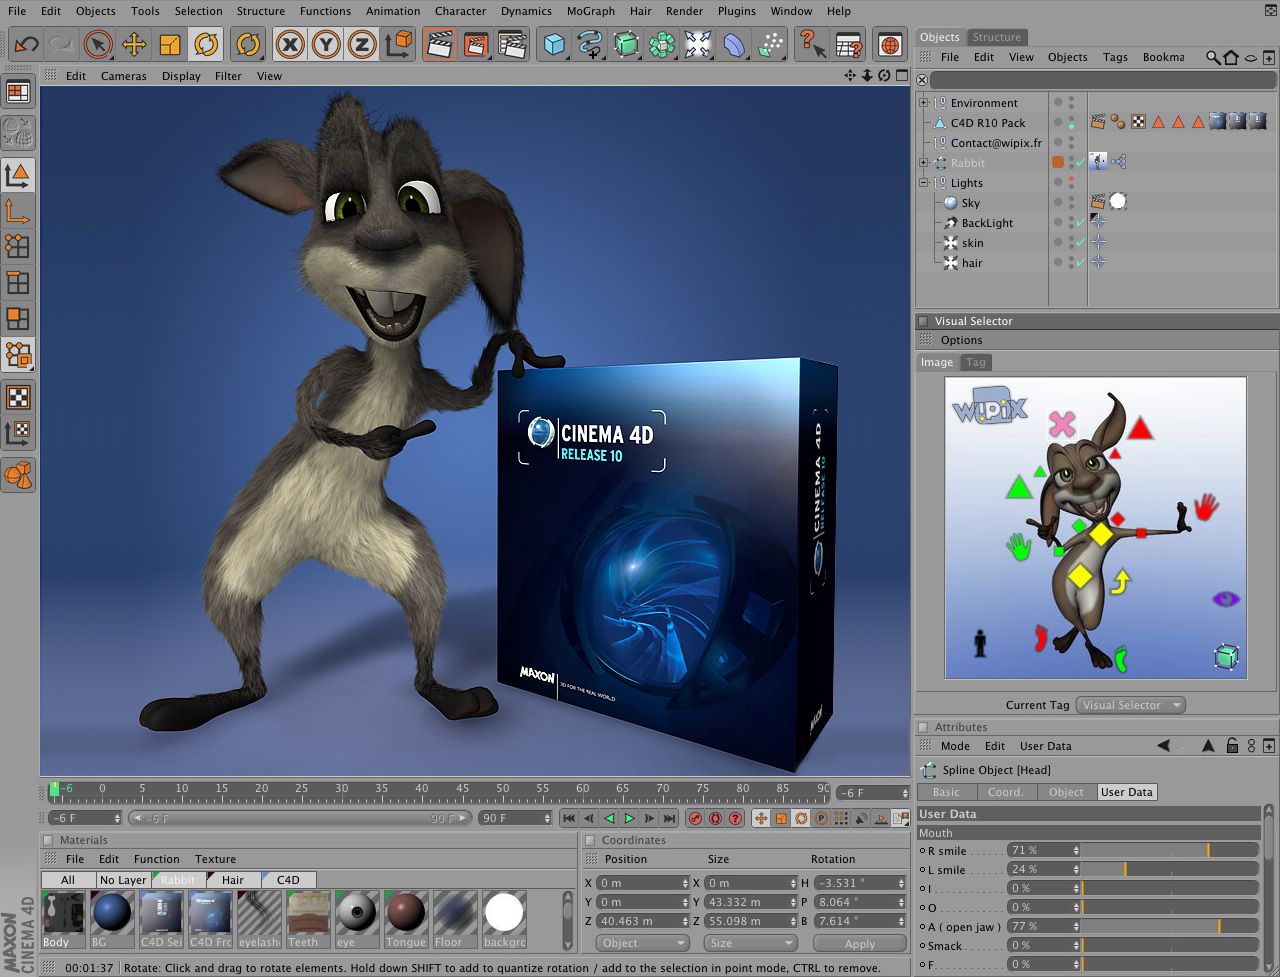 Cinema 4D Download For Free